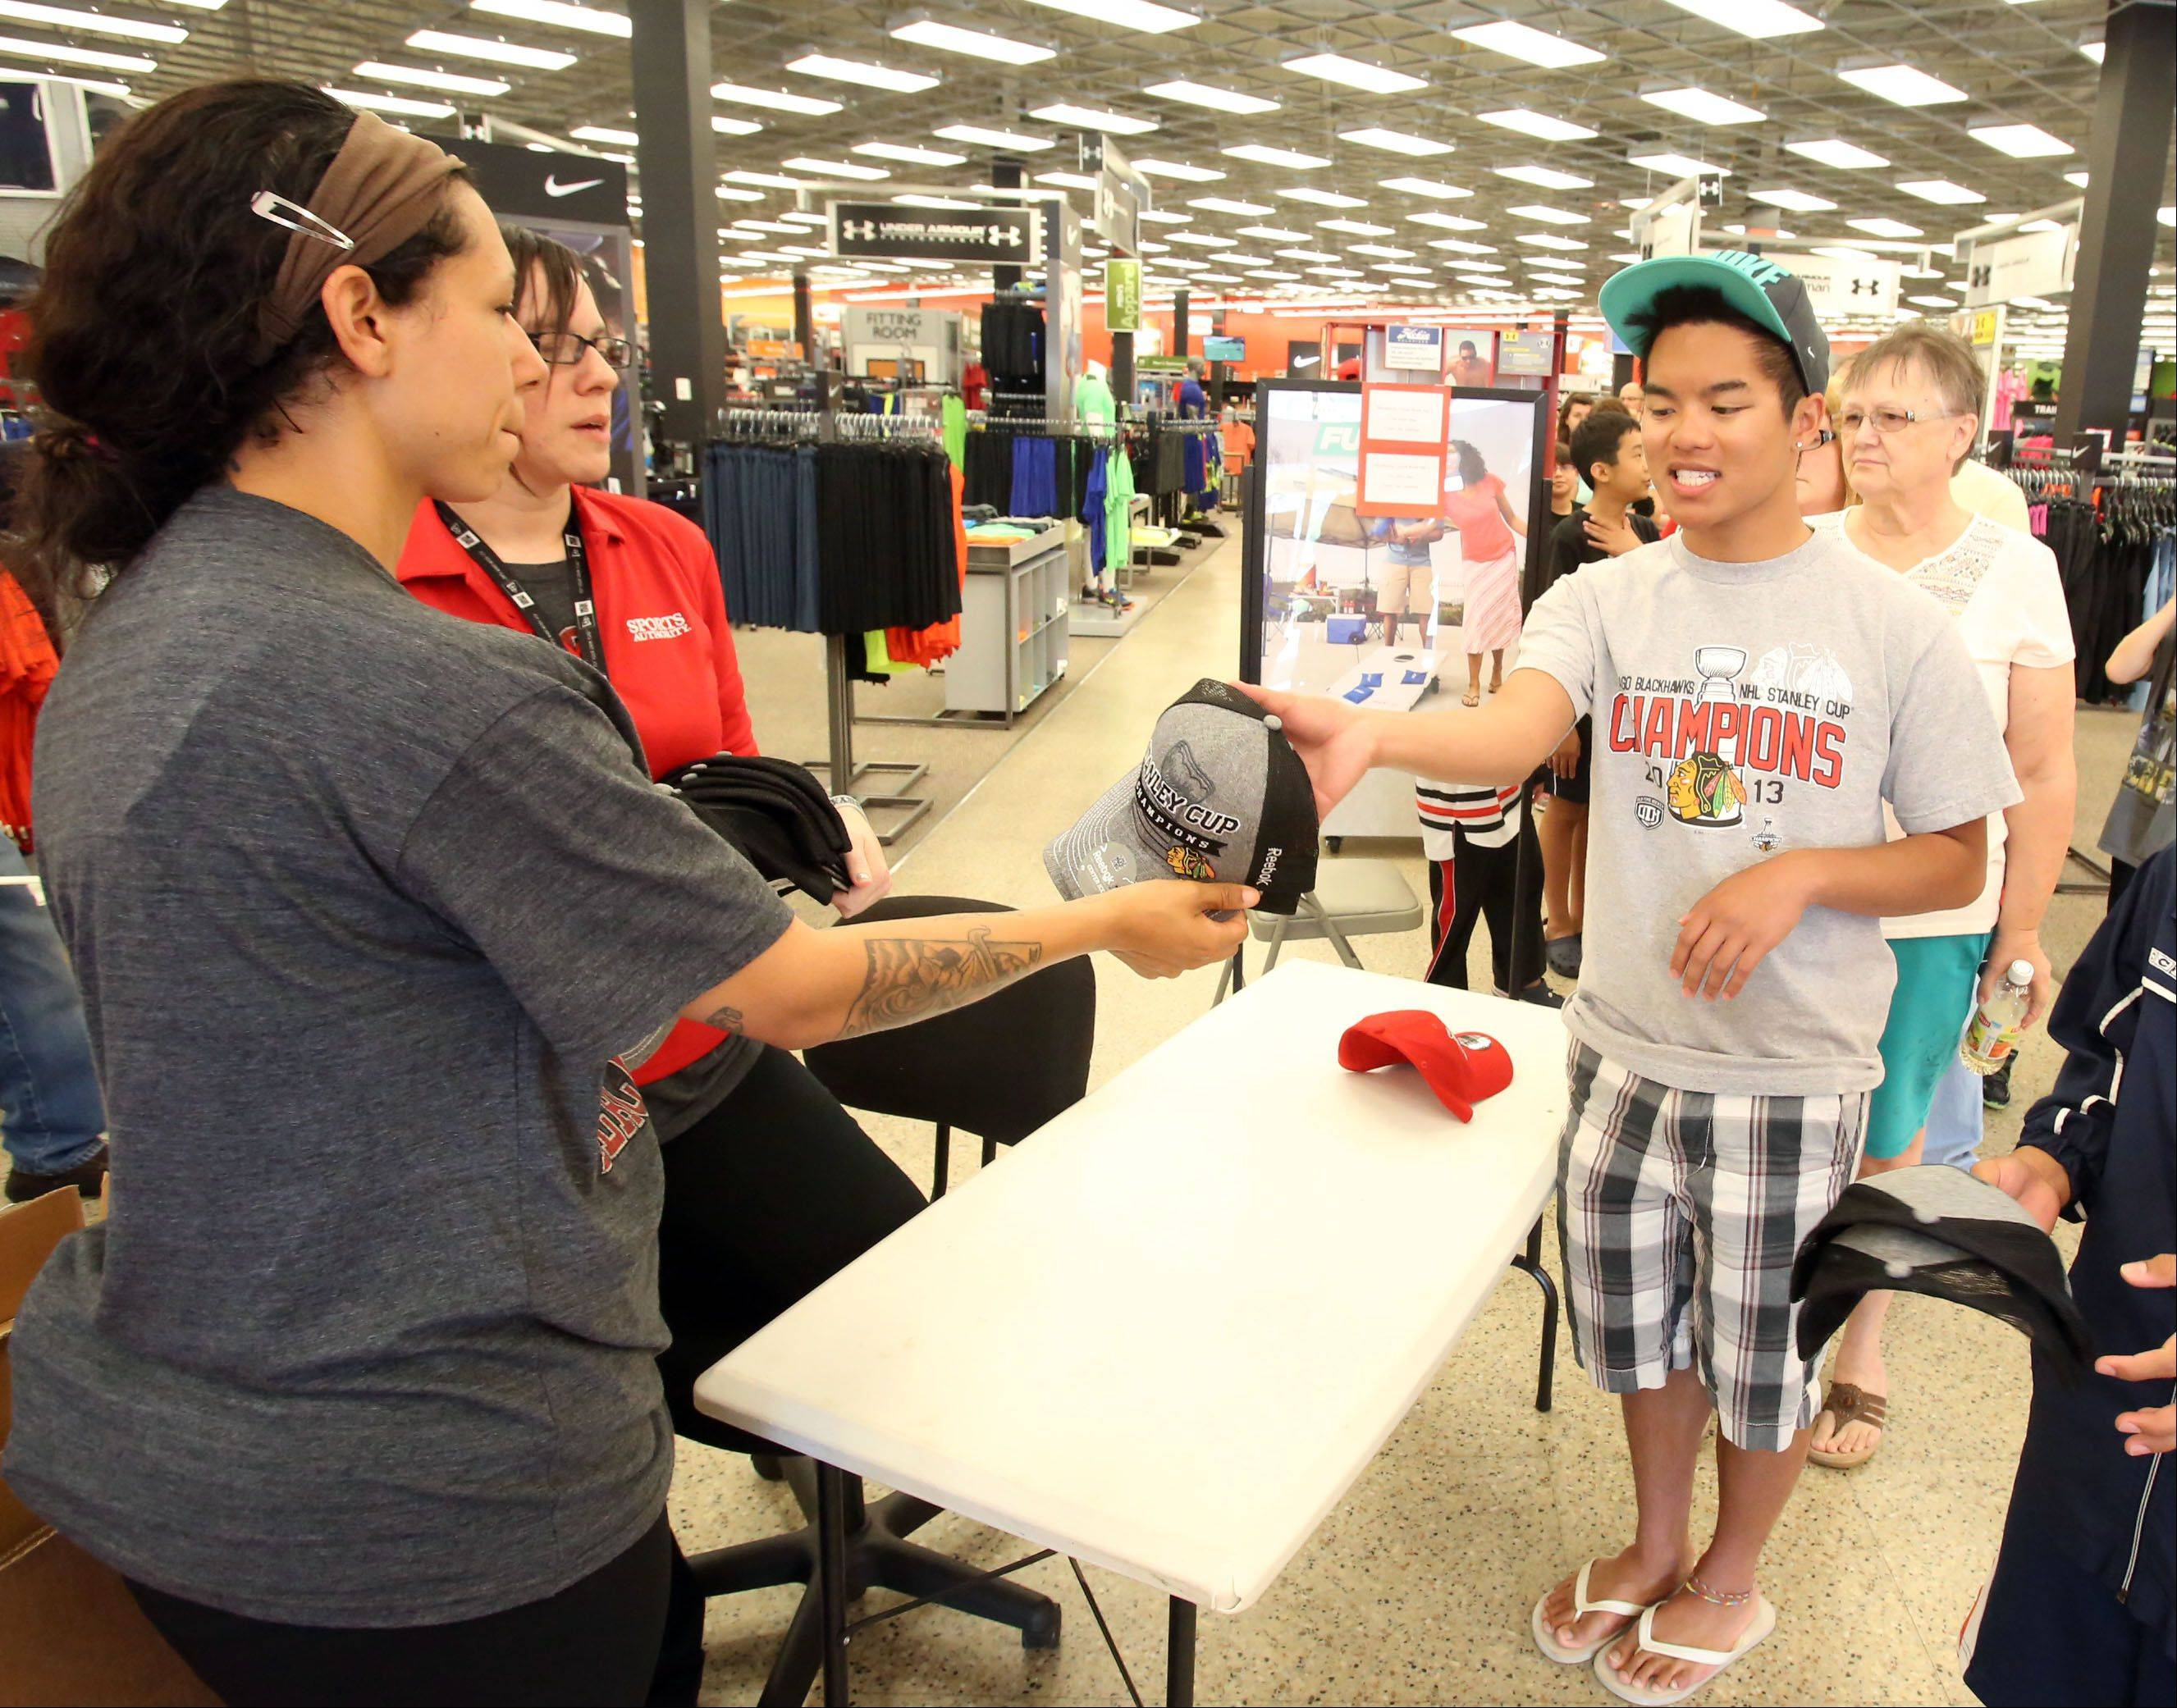 After waiting in line for two hours for a new shipment to arrive, Jeremy Vivit of Mount Prospect gets one of the last official Chicago Blackhawks Stanley Cup hats from Tanya Neitzke at Sports Authority in Mount Prospect on Tuesday.